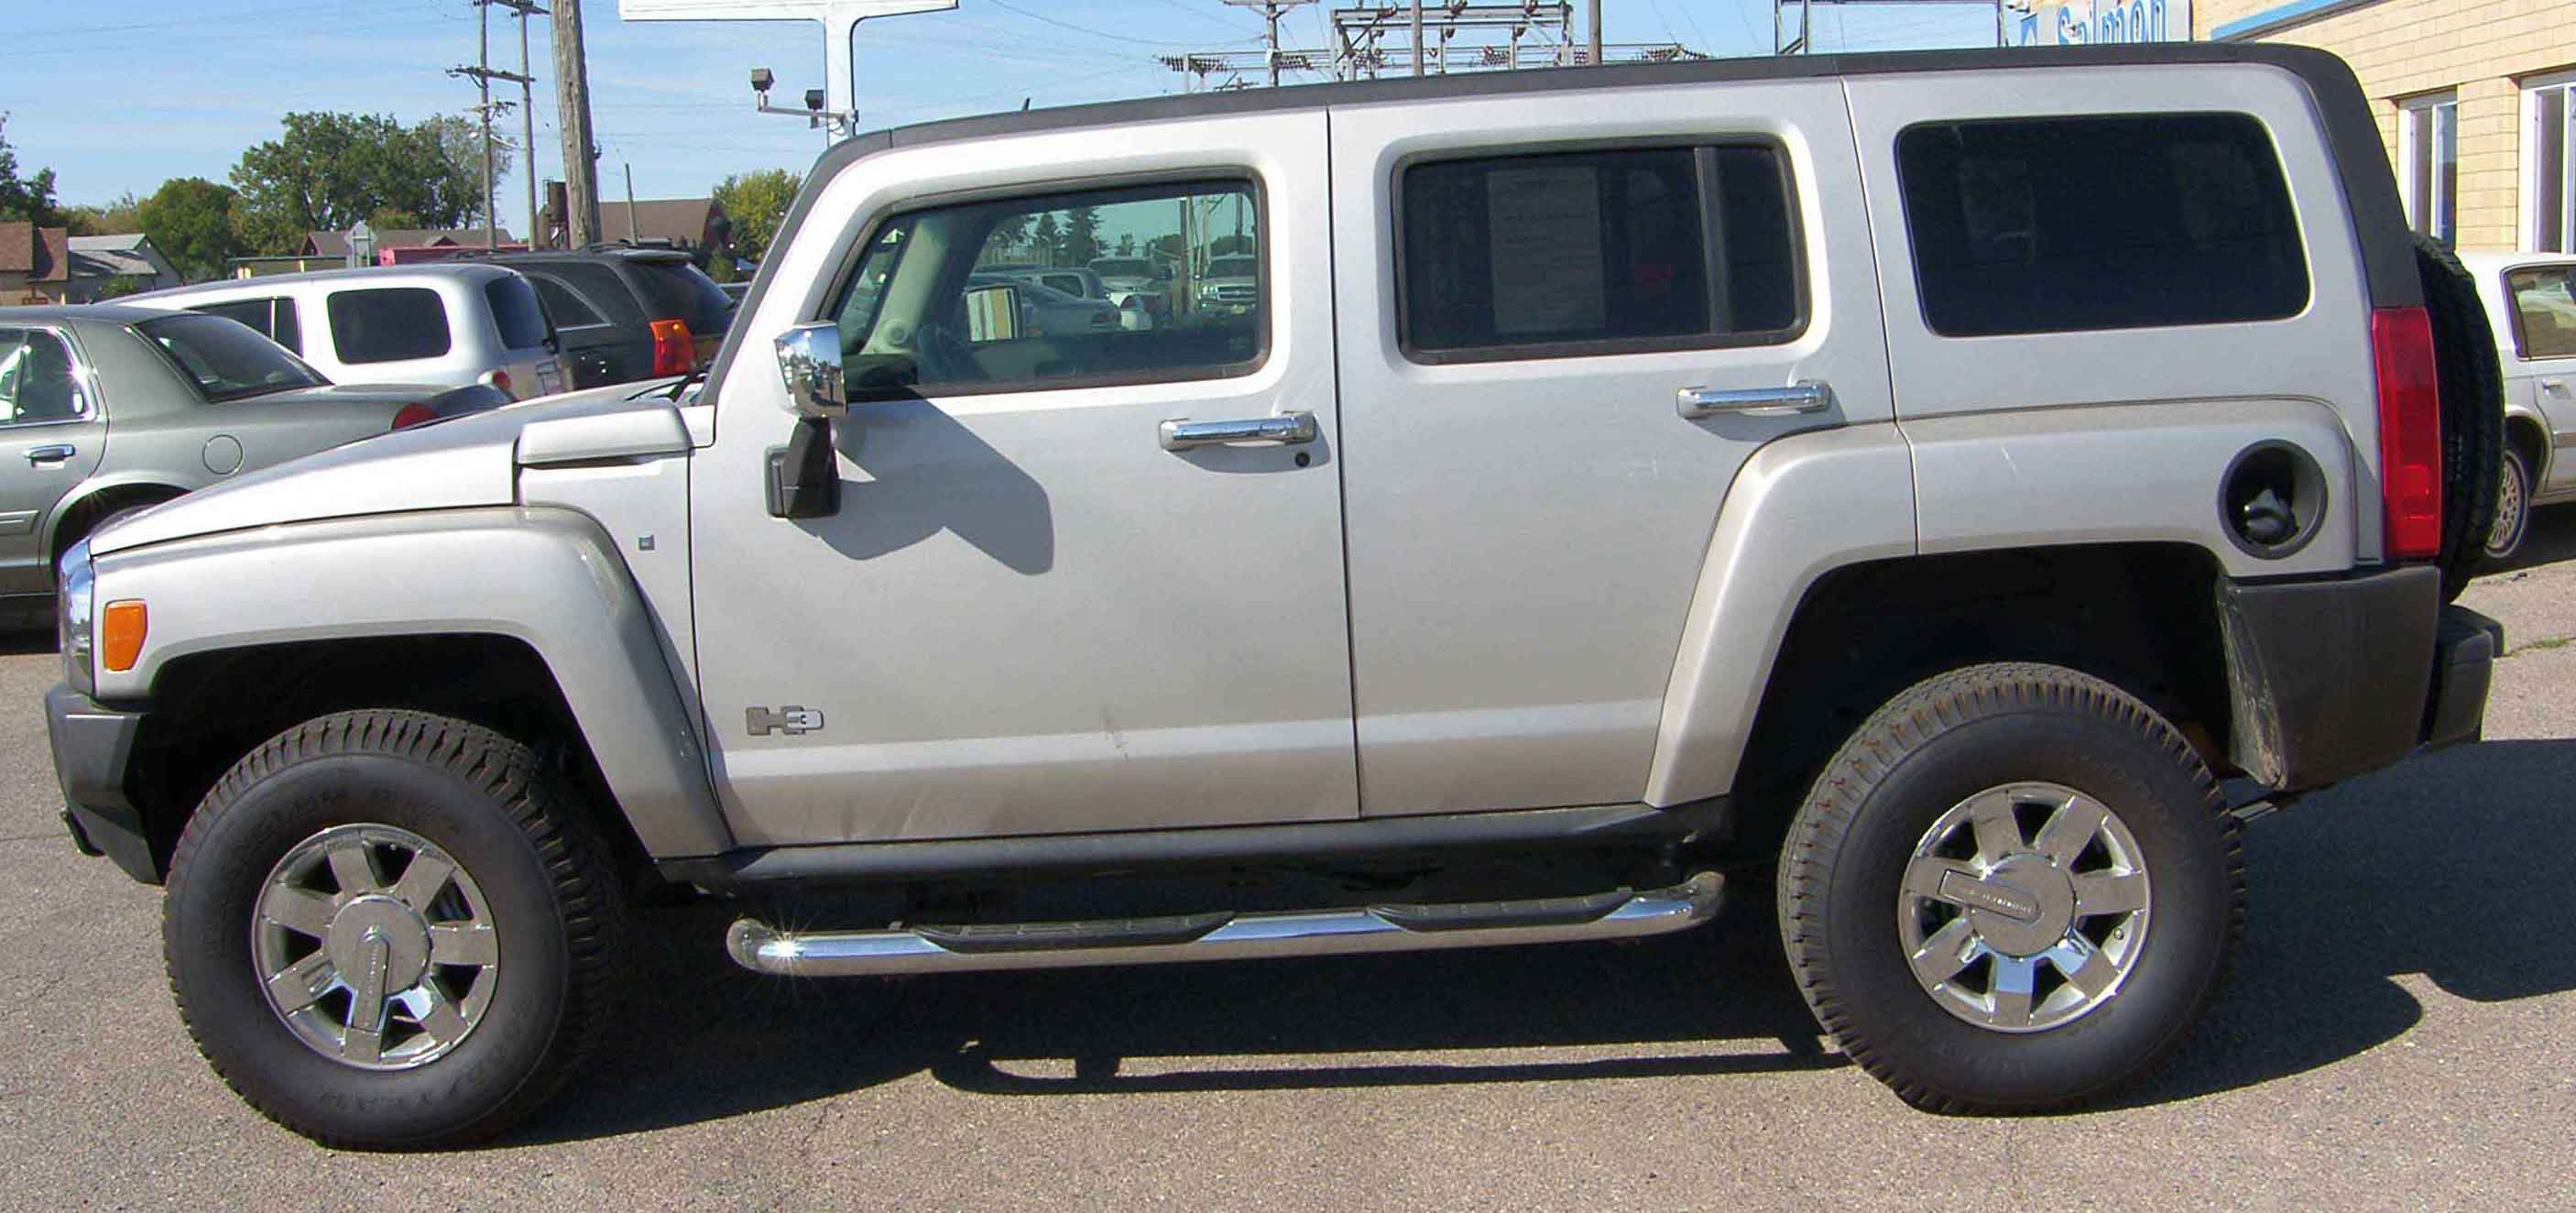 Used Cars Hummer Used Cars Hummer Suppliers and Manufacturers at